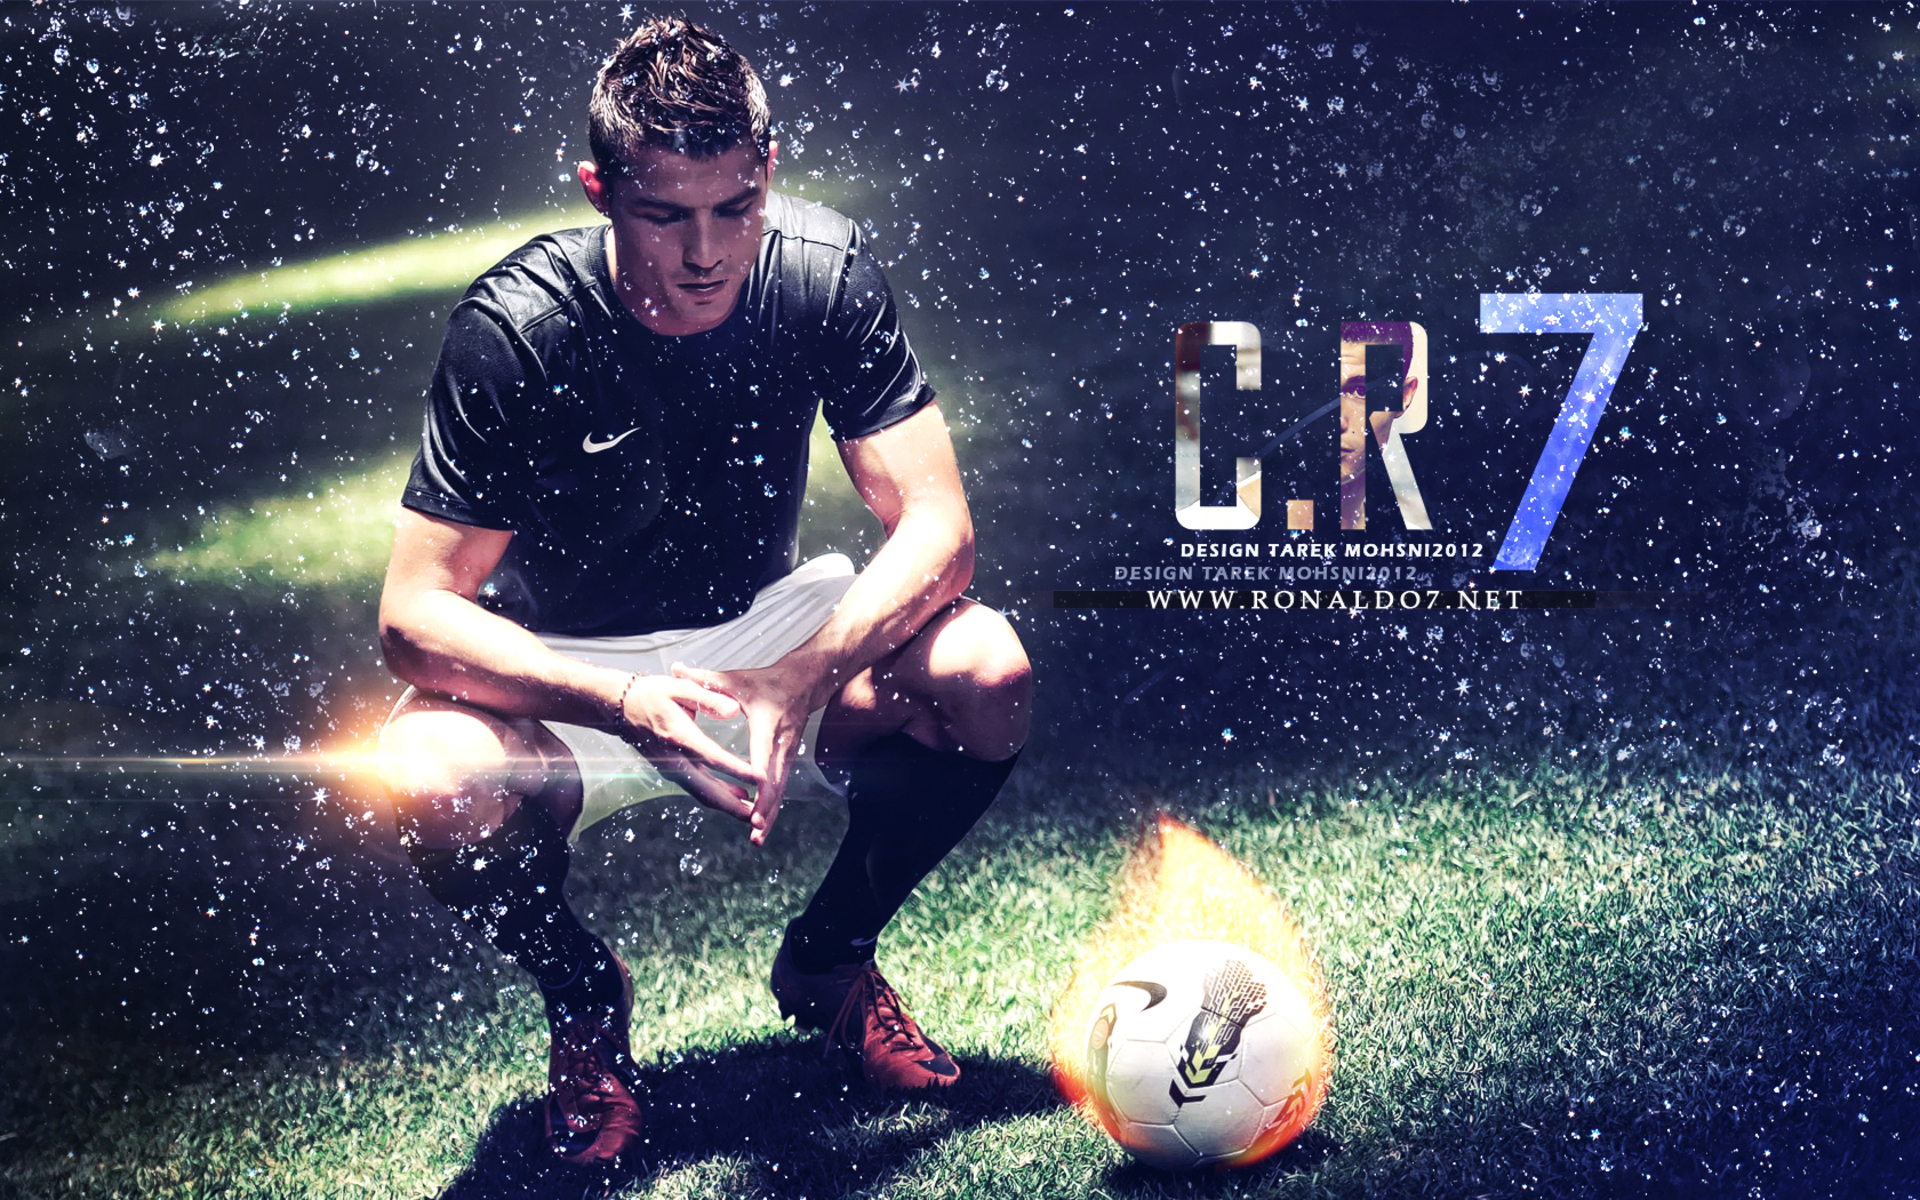 Cristiano Ronaldo Wallpapers HD soccer ball in flames